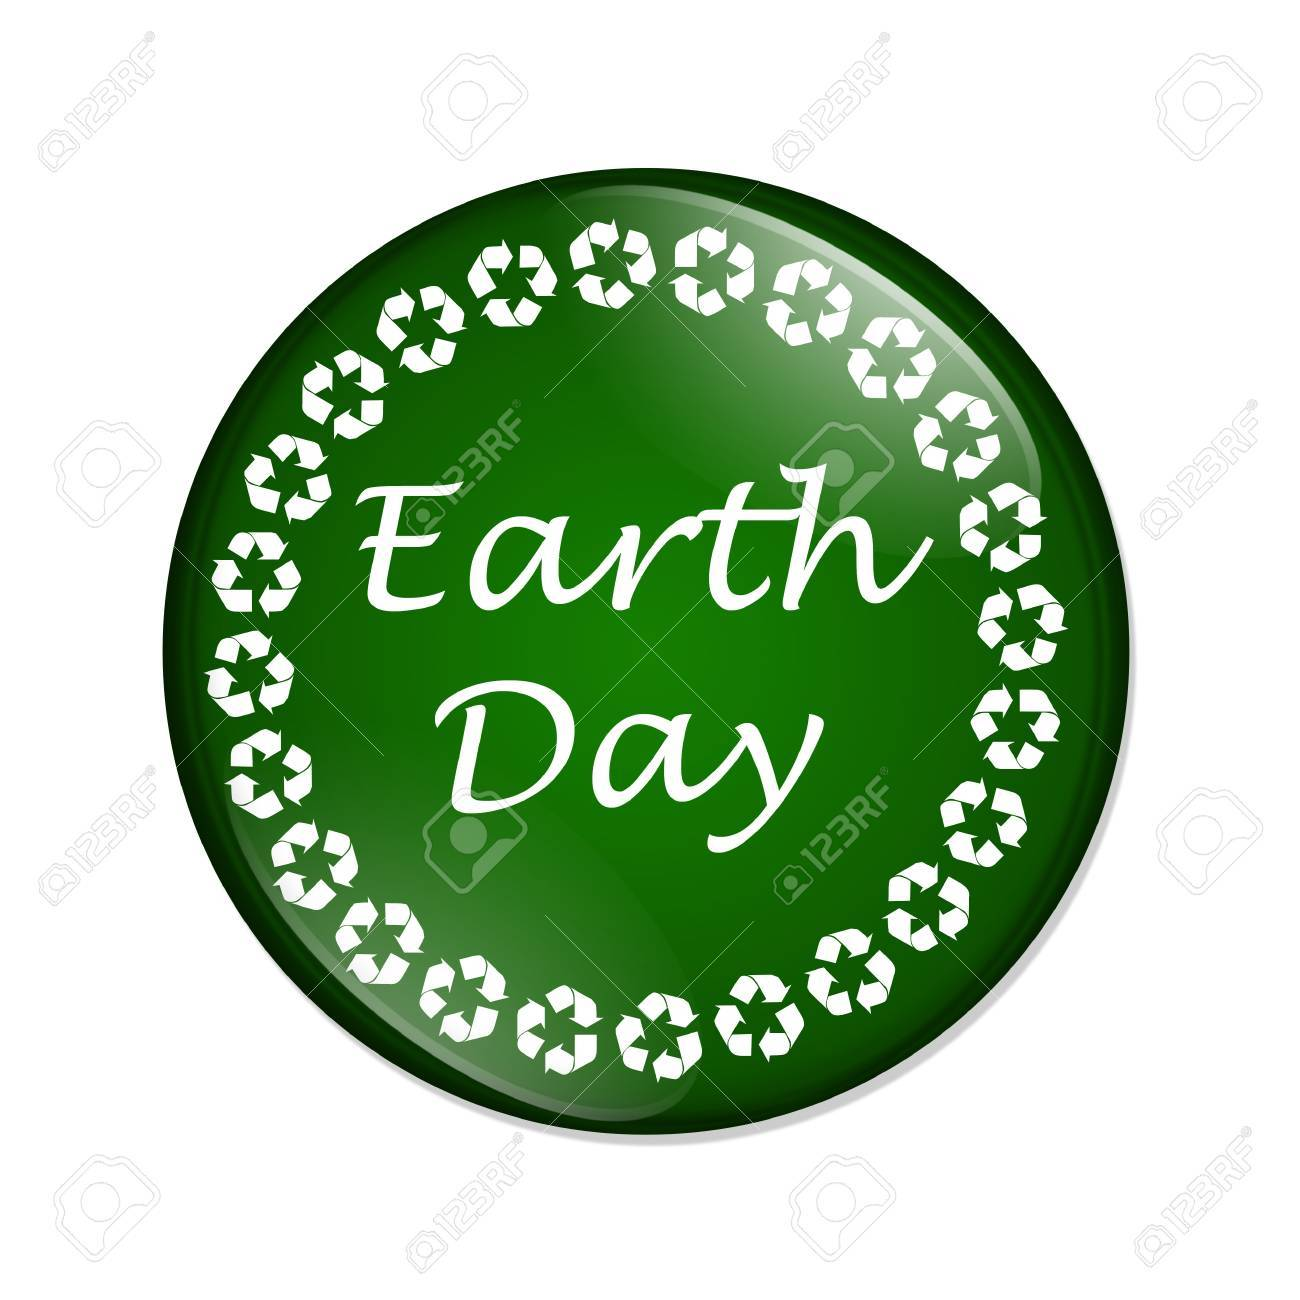 A Green And White Button With Words Earth Day Surrounded By Recycle